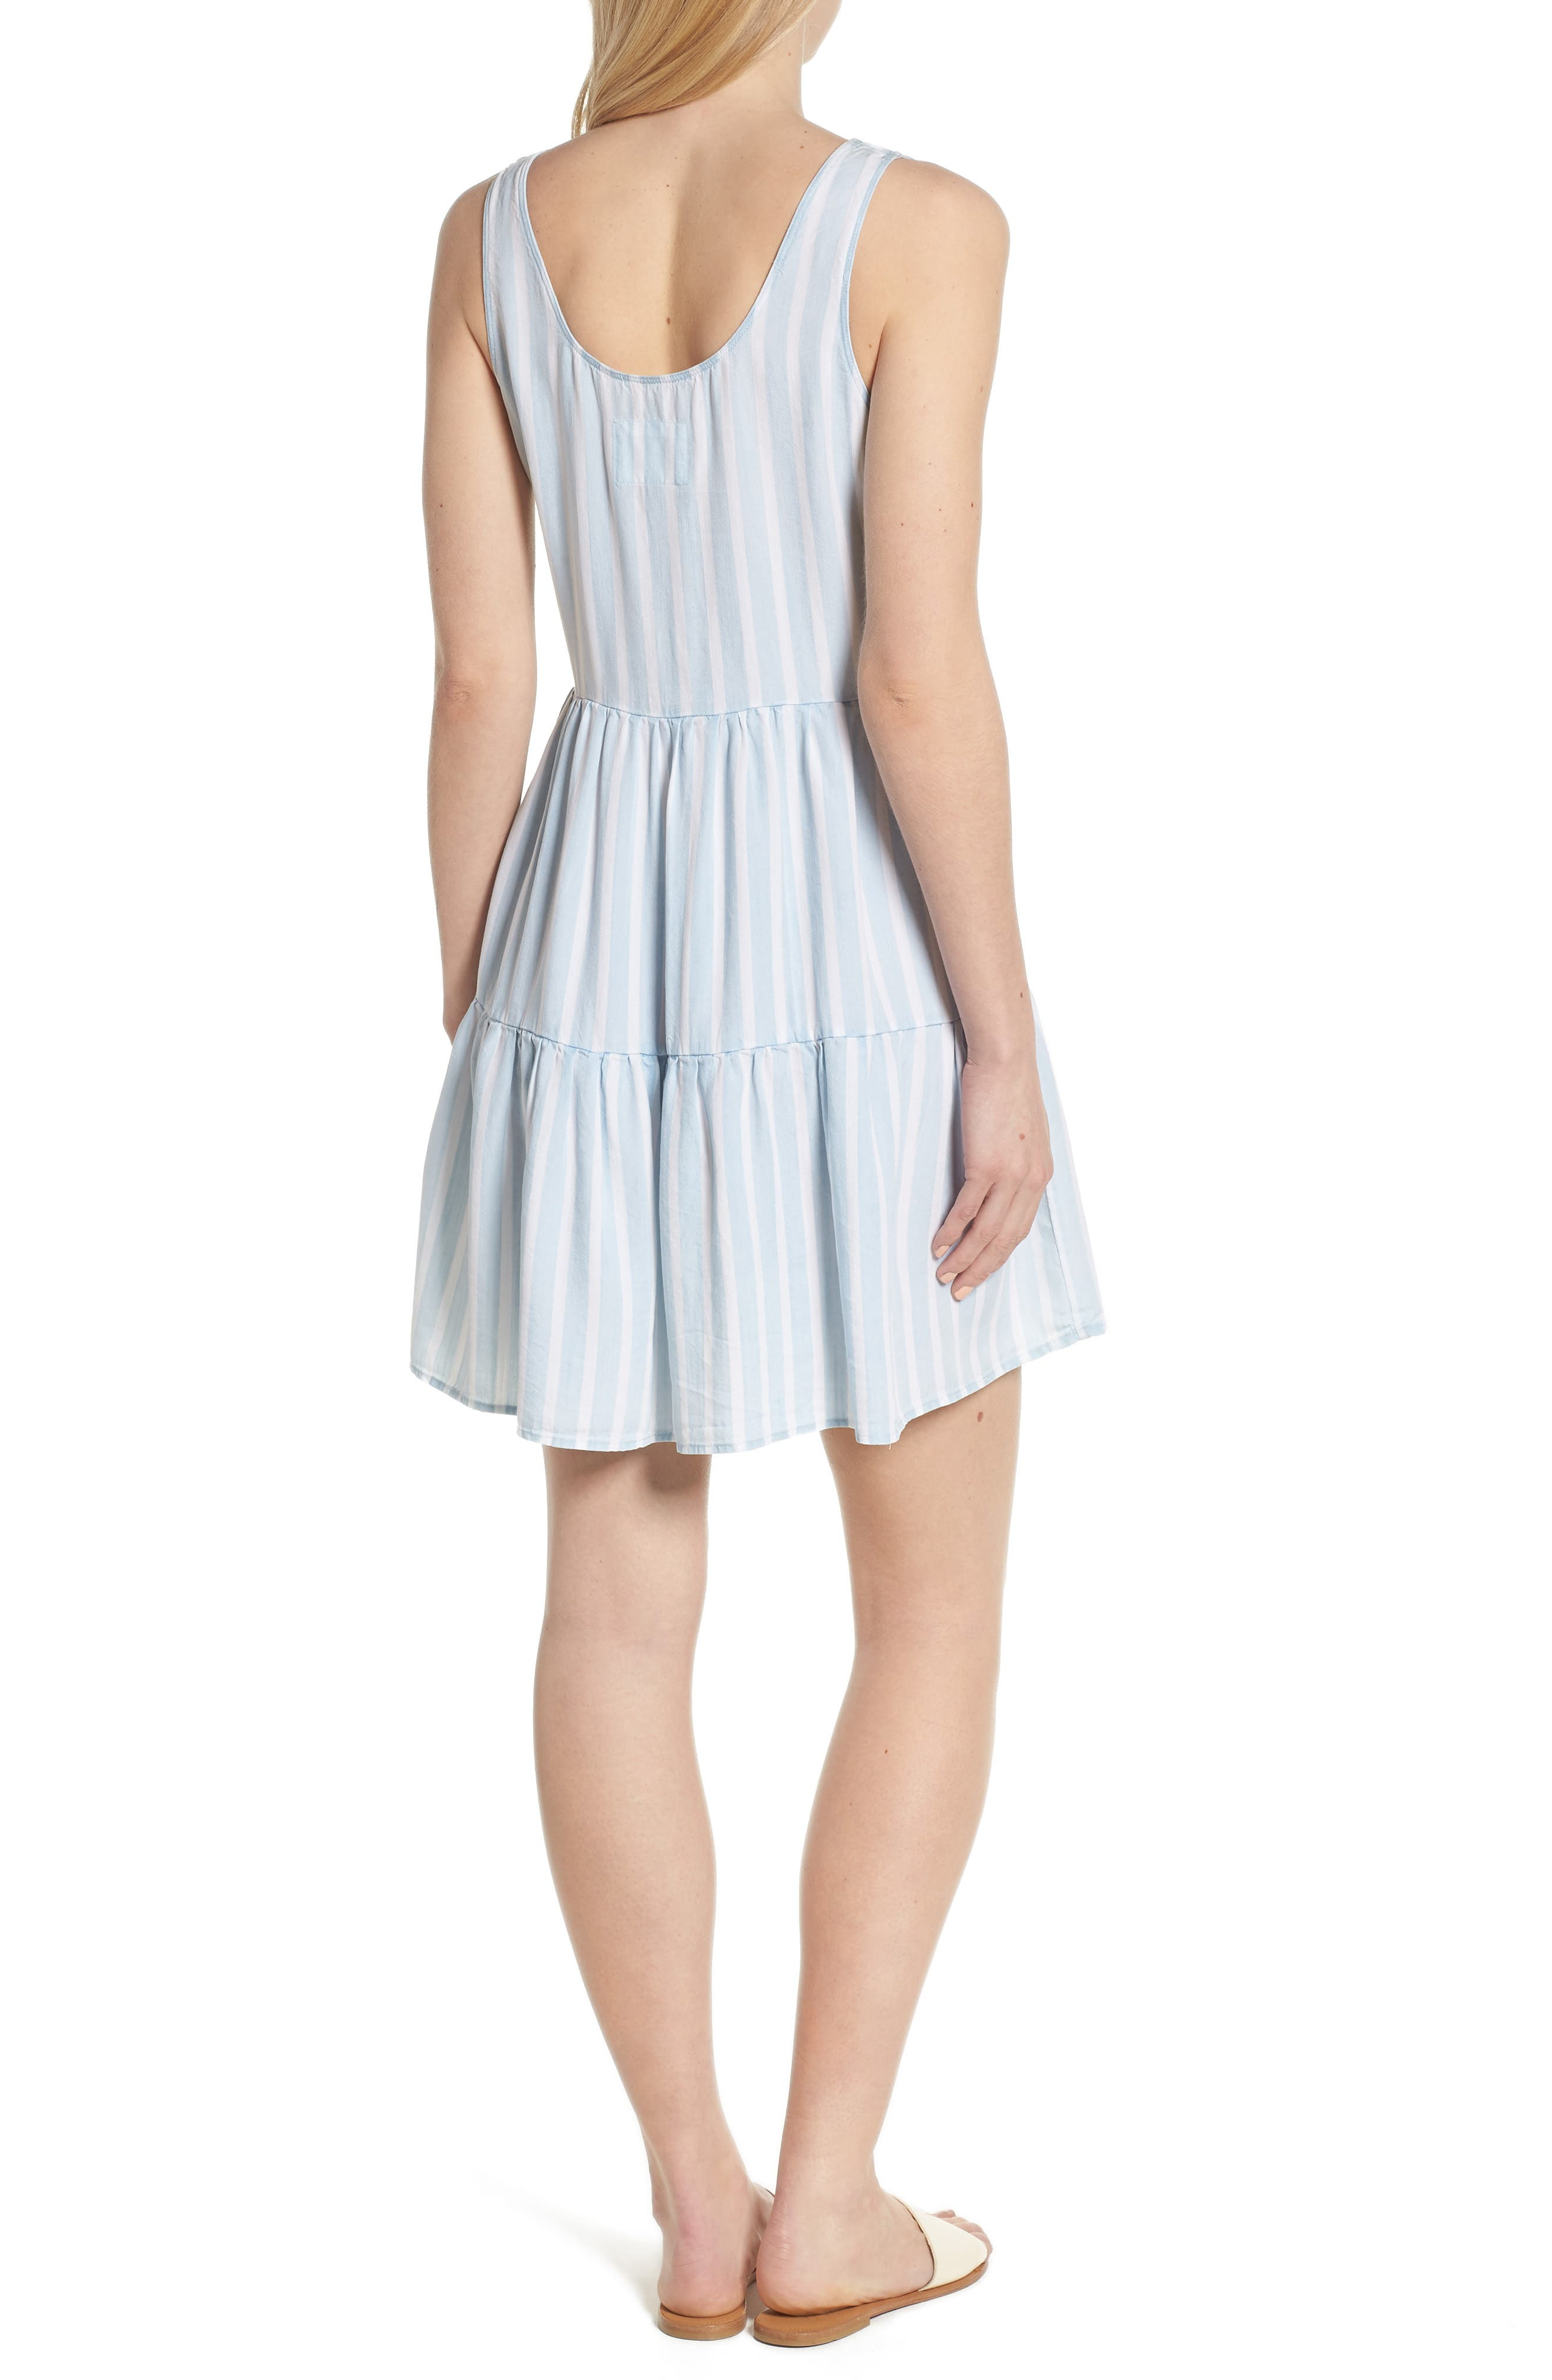 Nora Stripe Dress,                             Alternate thumbnail 2, color,                             470